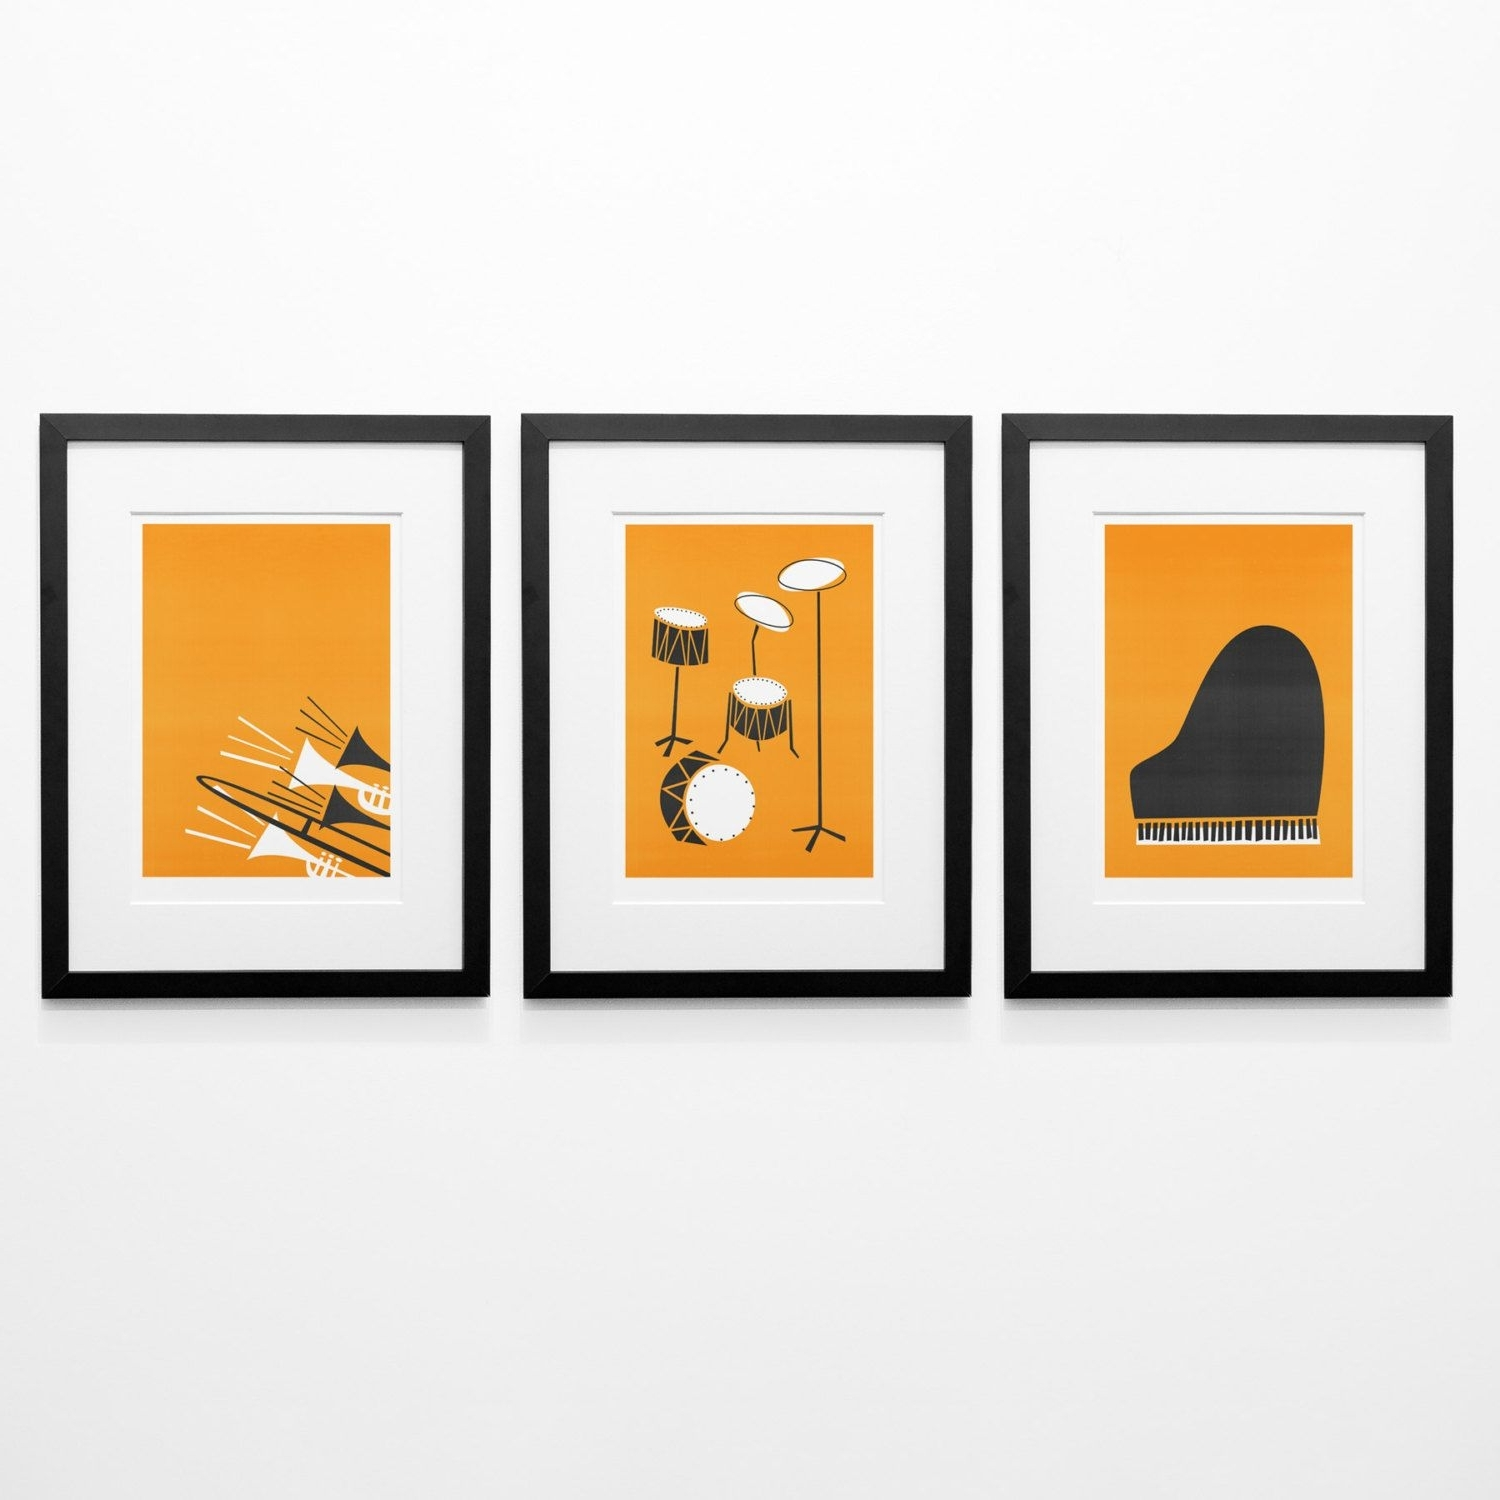 Most Popular Set Of 3 Music Posters, Mid Century Modern Wall Art, Birthday Gift Intended For Mid Century Modern Wall Art (View 14 of 20)